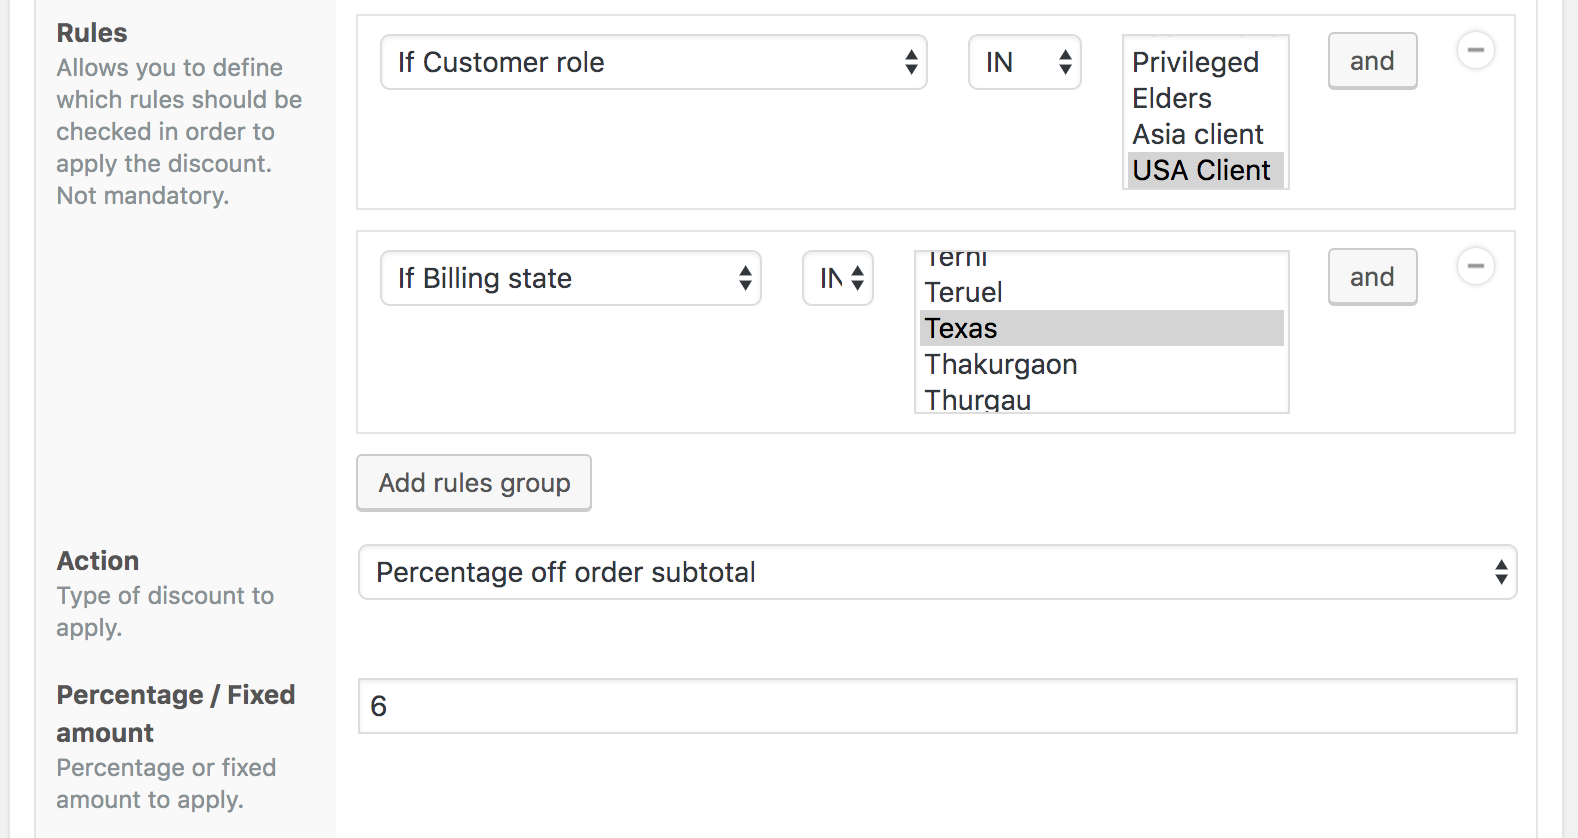 6% discount to USA clients billing from Texas